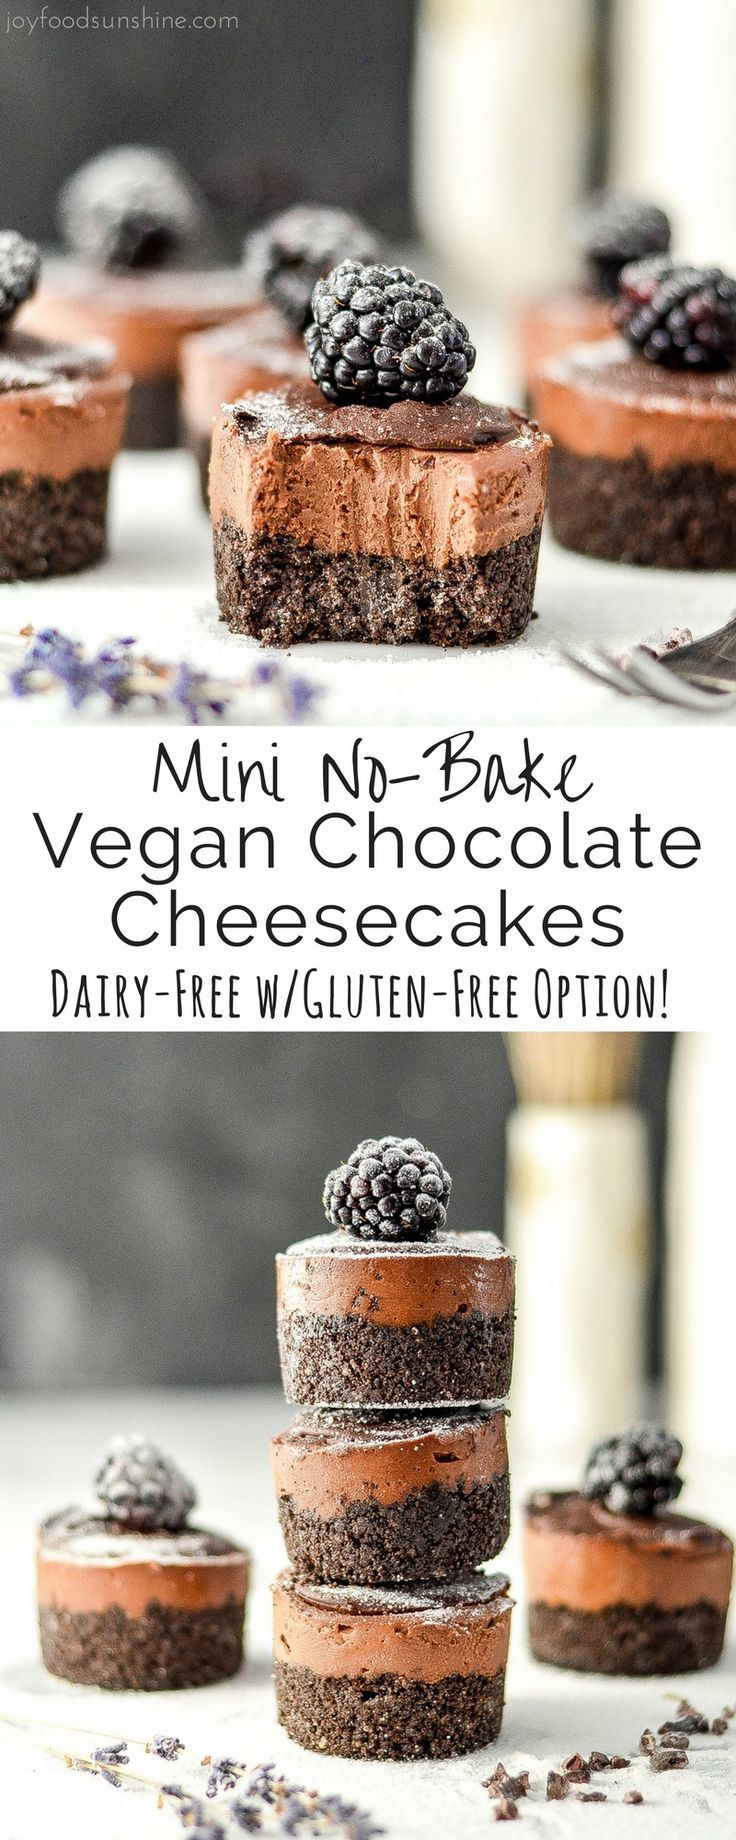 Mini No-Bake Vegan Chocolate Cheesecakes are a simple, elegant dessert that are easy and delicious! Vegan with a gluten-free option! Paleo friendly!